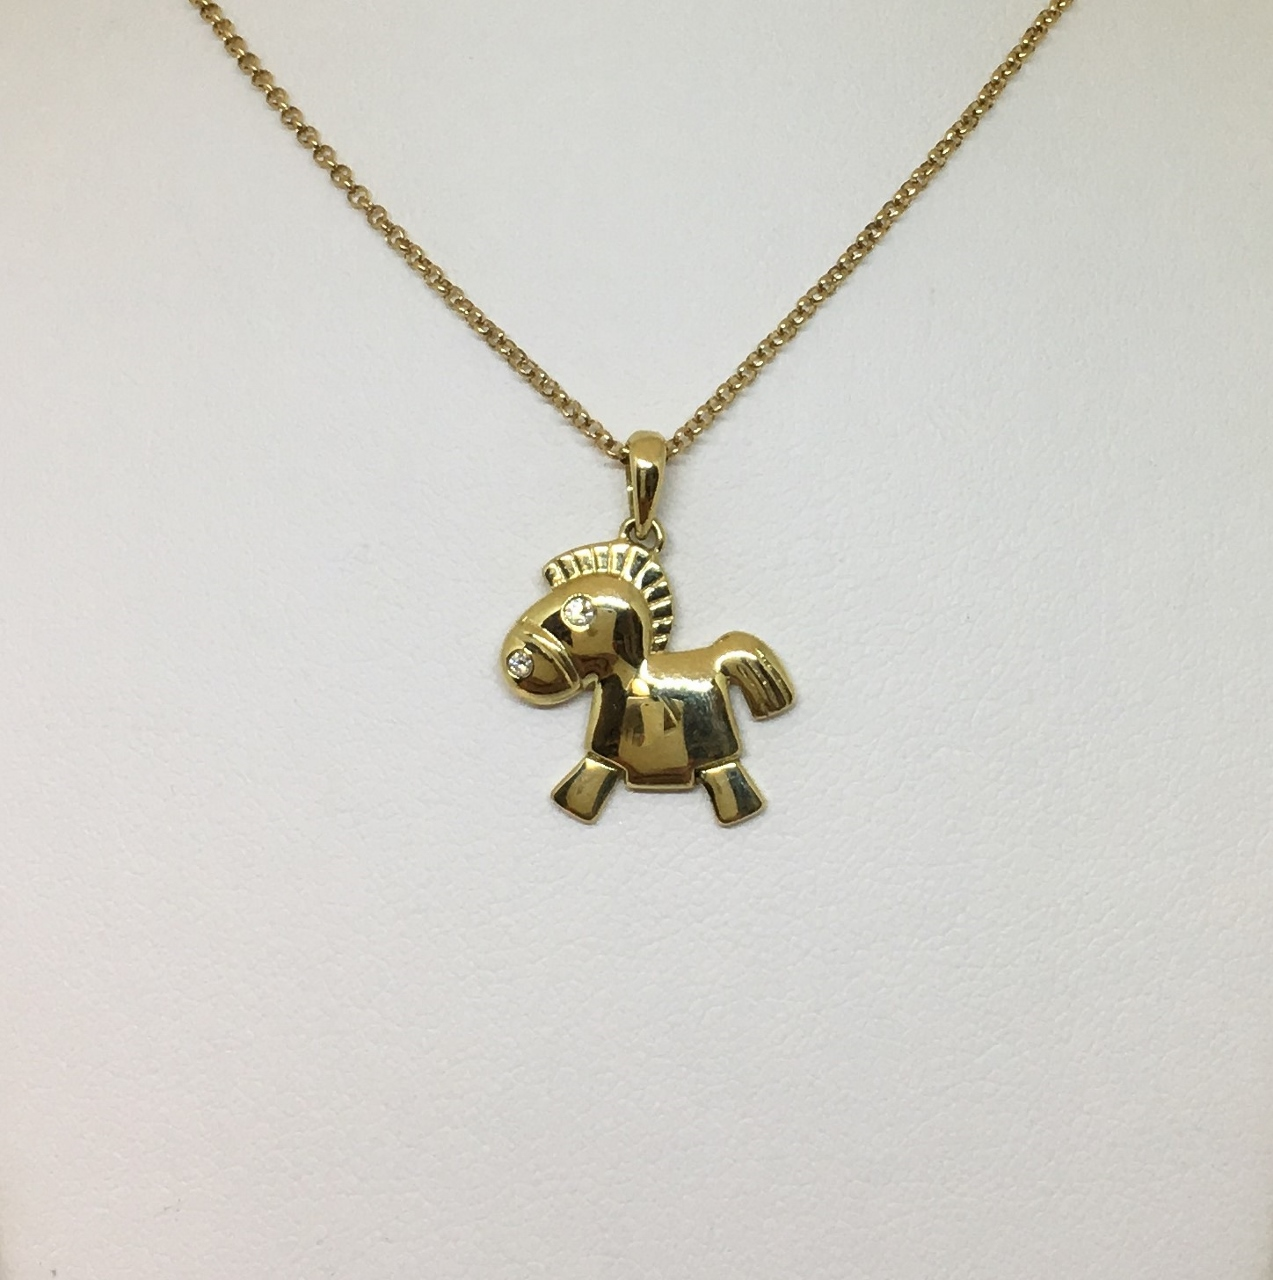 18K Yellow Gold Horse Design Pendant With Chain